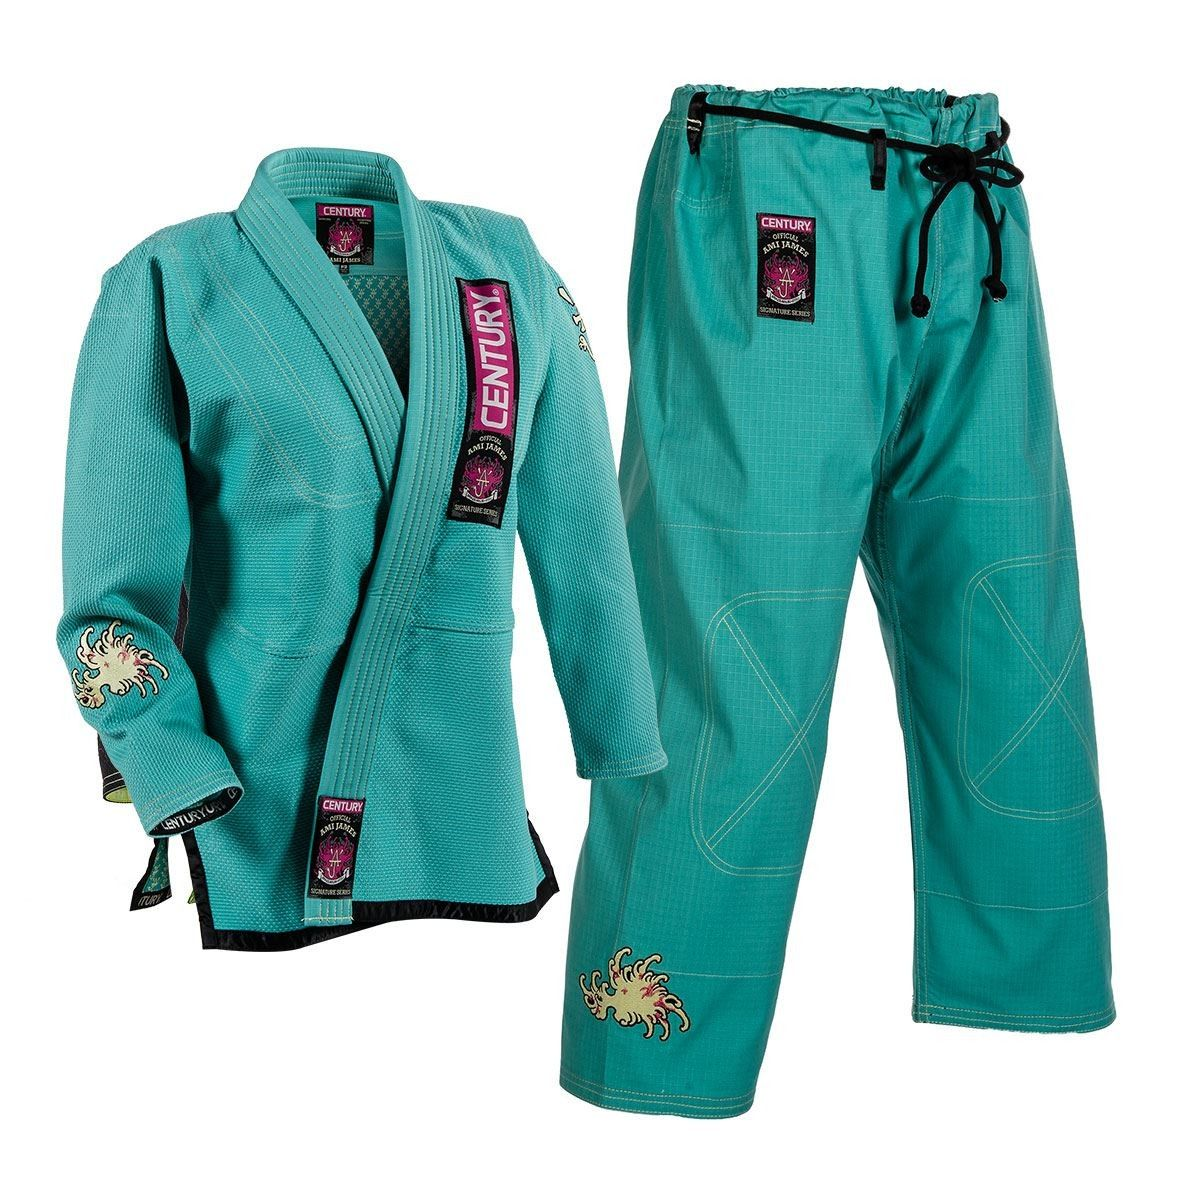 At martial gear we want to provide you the widest